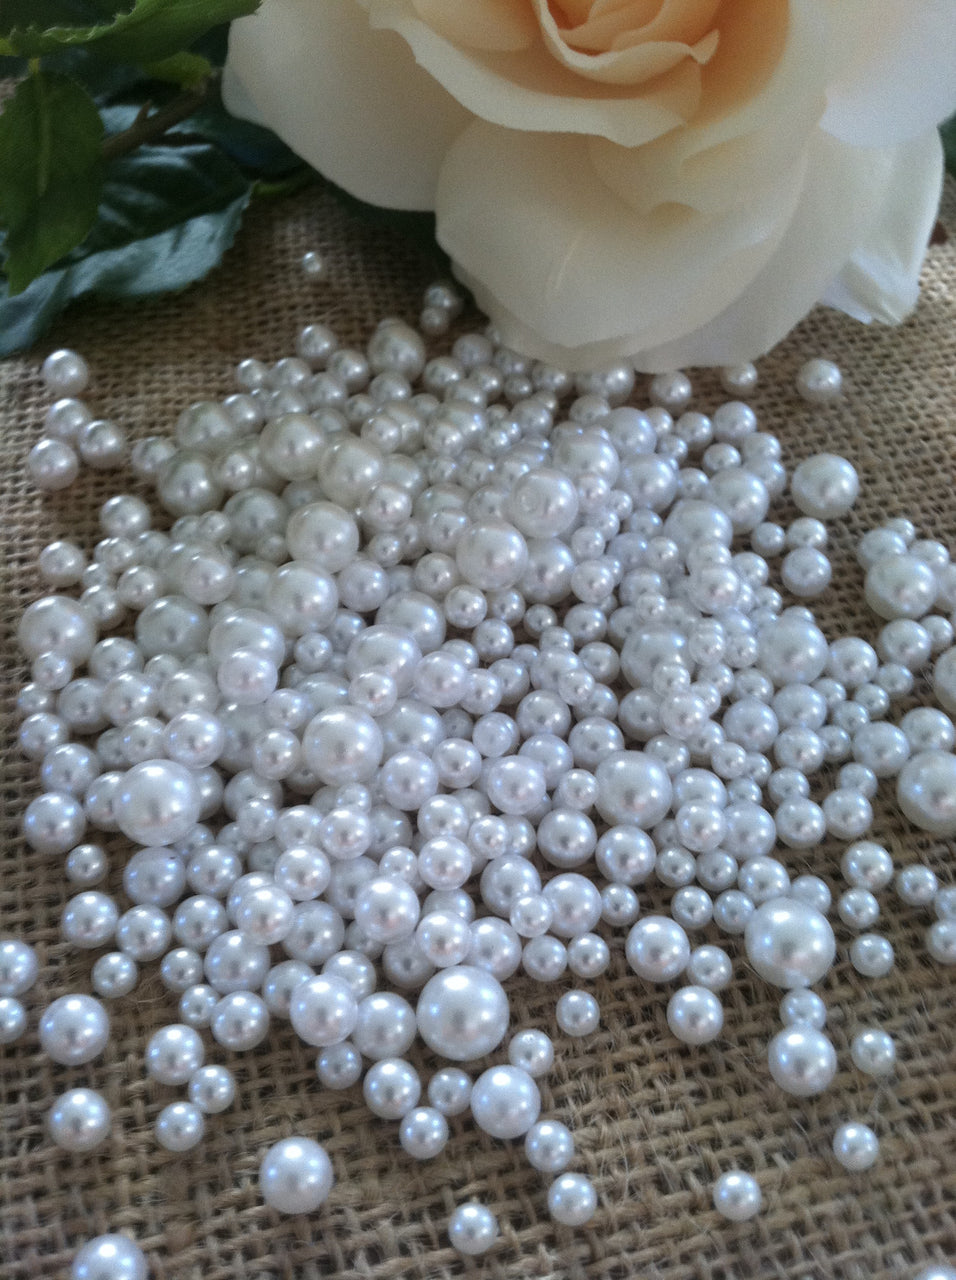 White Pearls Candle Votive Fillers (400pcs) No Hole Pearls Mix Size, Table Scatters